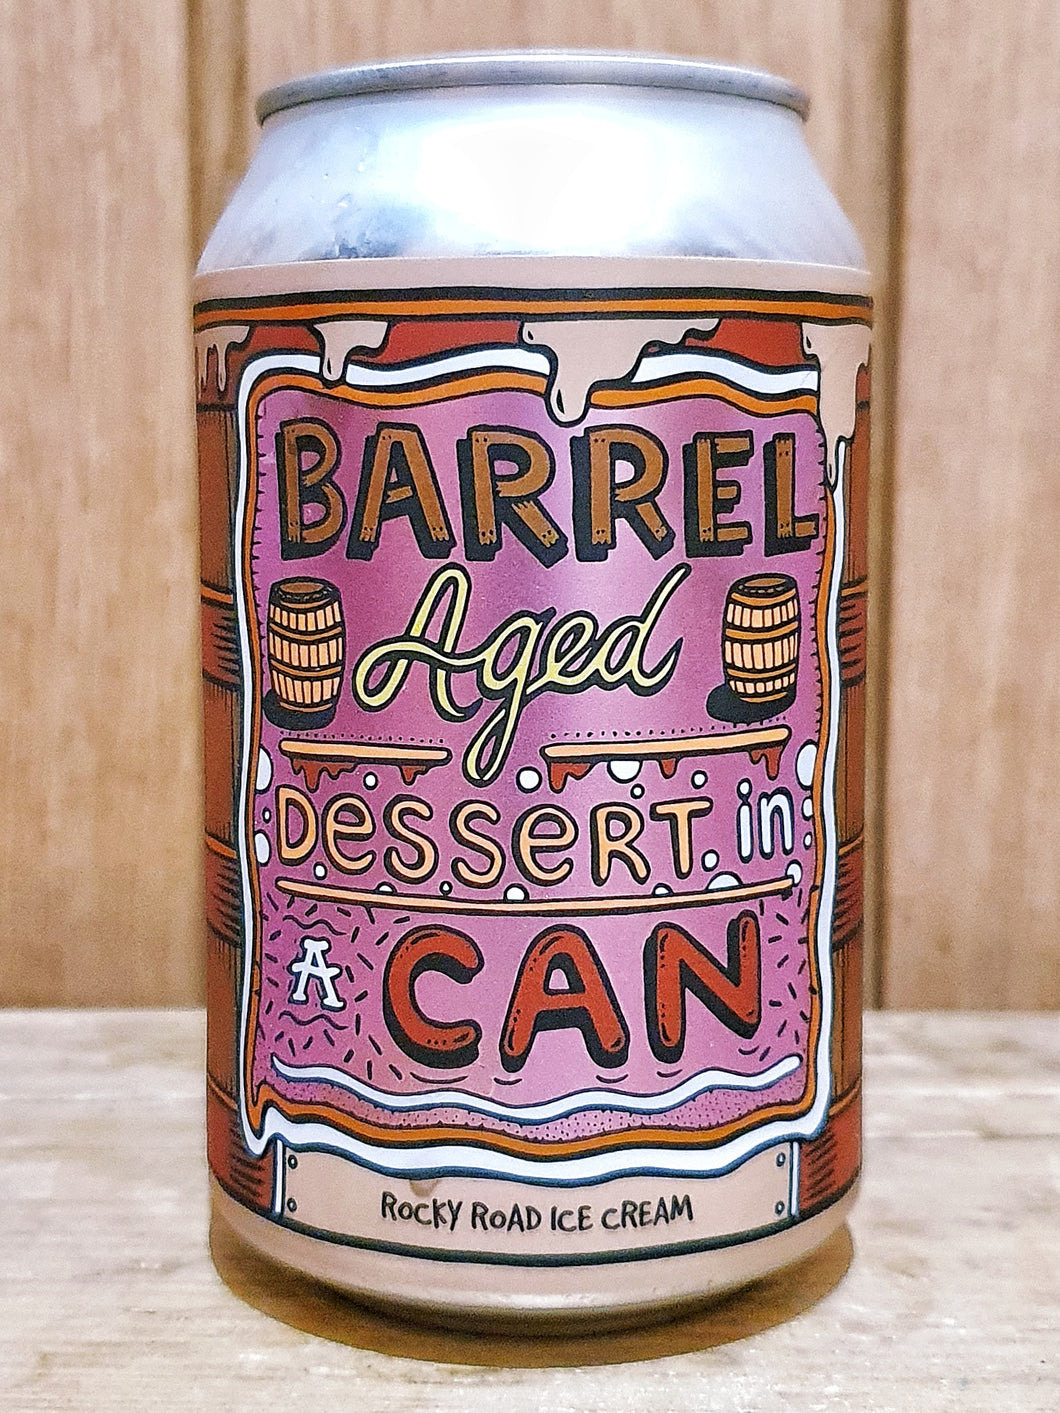 Amundsen -  Barrel Aged Dessert in a Can 'Rocky Road Ice Cream'